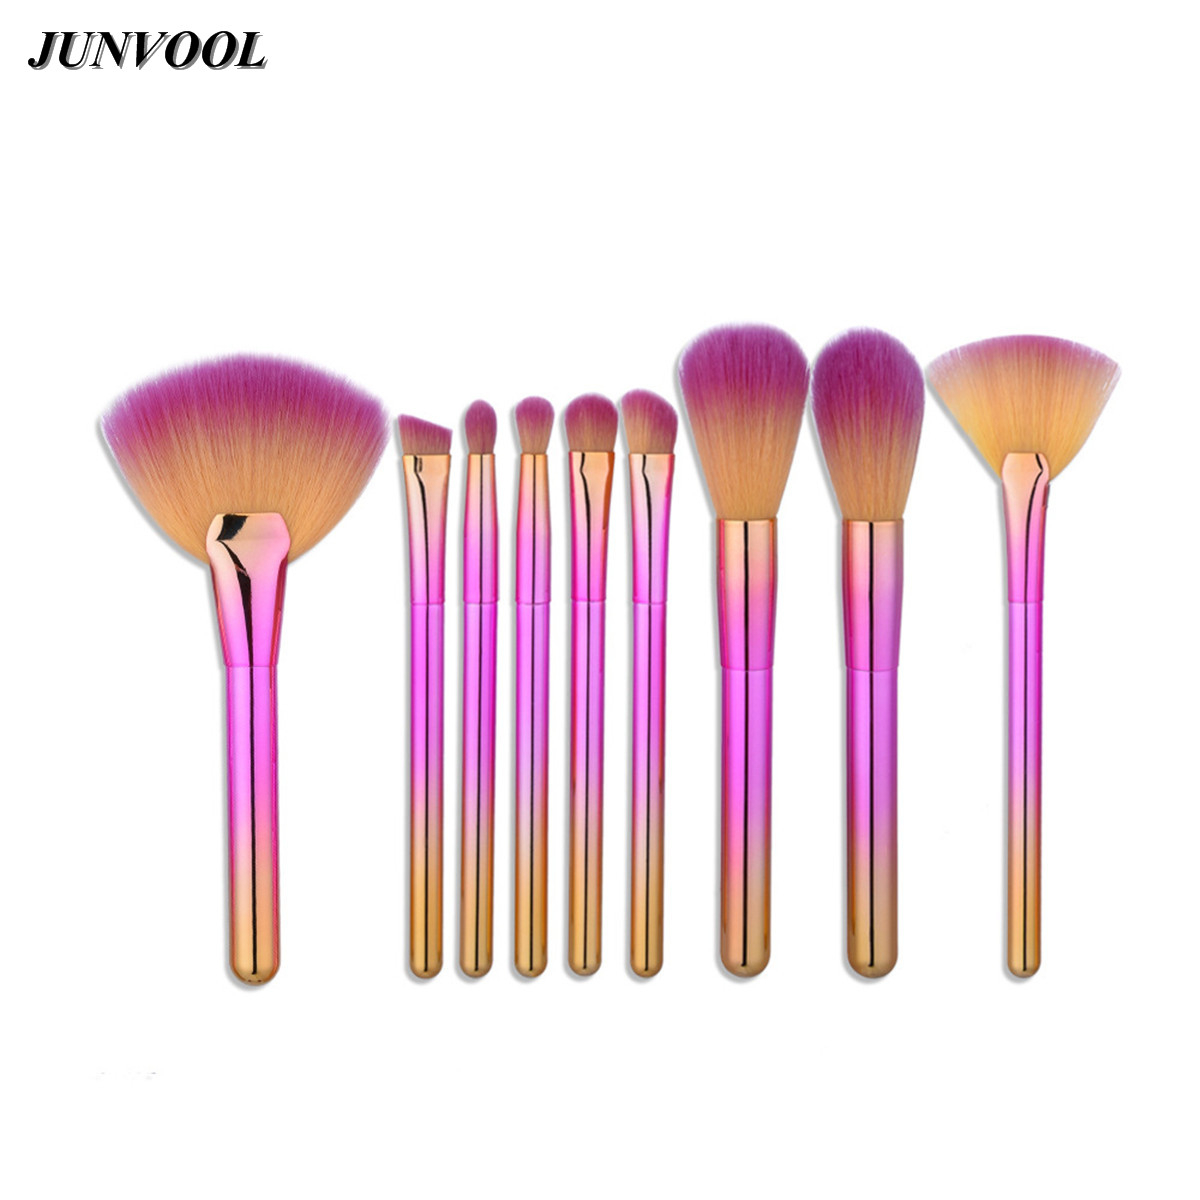 9pcs Pink Foundation Brush Set Soft Synthetic Hair Professional Make Up Tools High Quality  Fan Powder Makeup Brushes Kit Newest 24 pcs soft synthetic hair make up tools kit cosmetic beauty makeup brush sets foundation brushes with pink love heart case